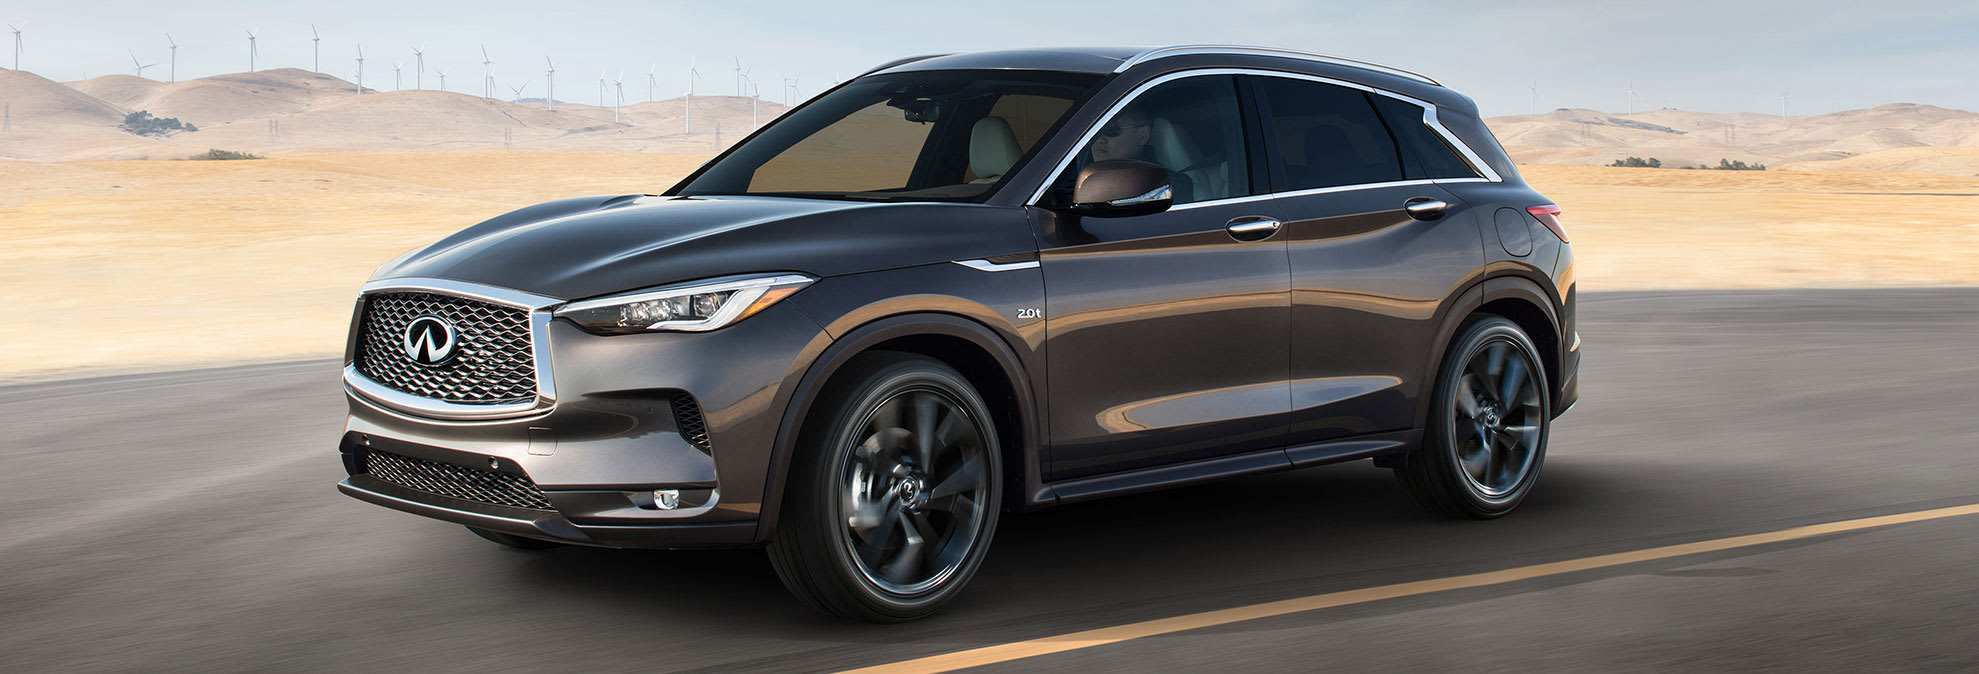 41 Concept of New 2019 Infiniti Qx50 Fuel Economy Review Performance and New Engine for New 2019 Infiniti Qx50 Fuel Economy Review